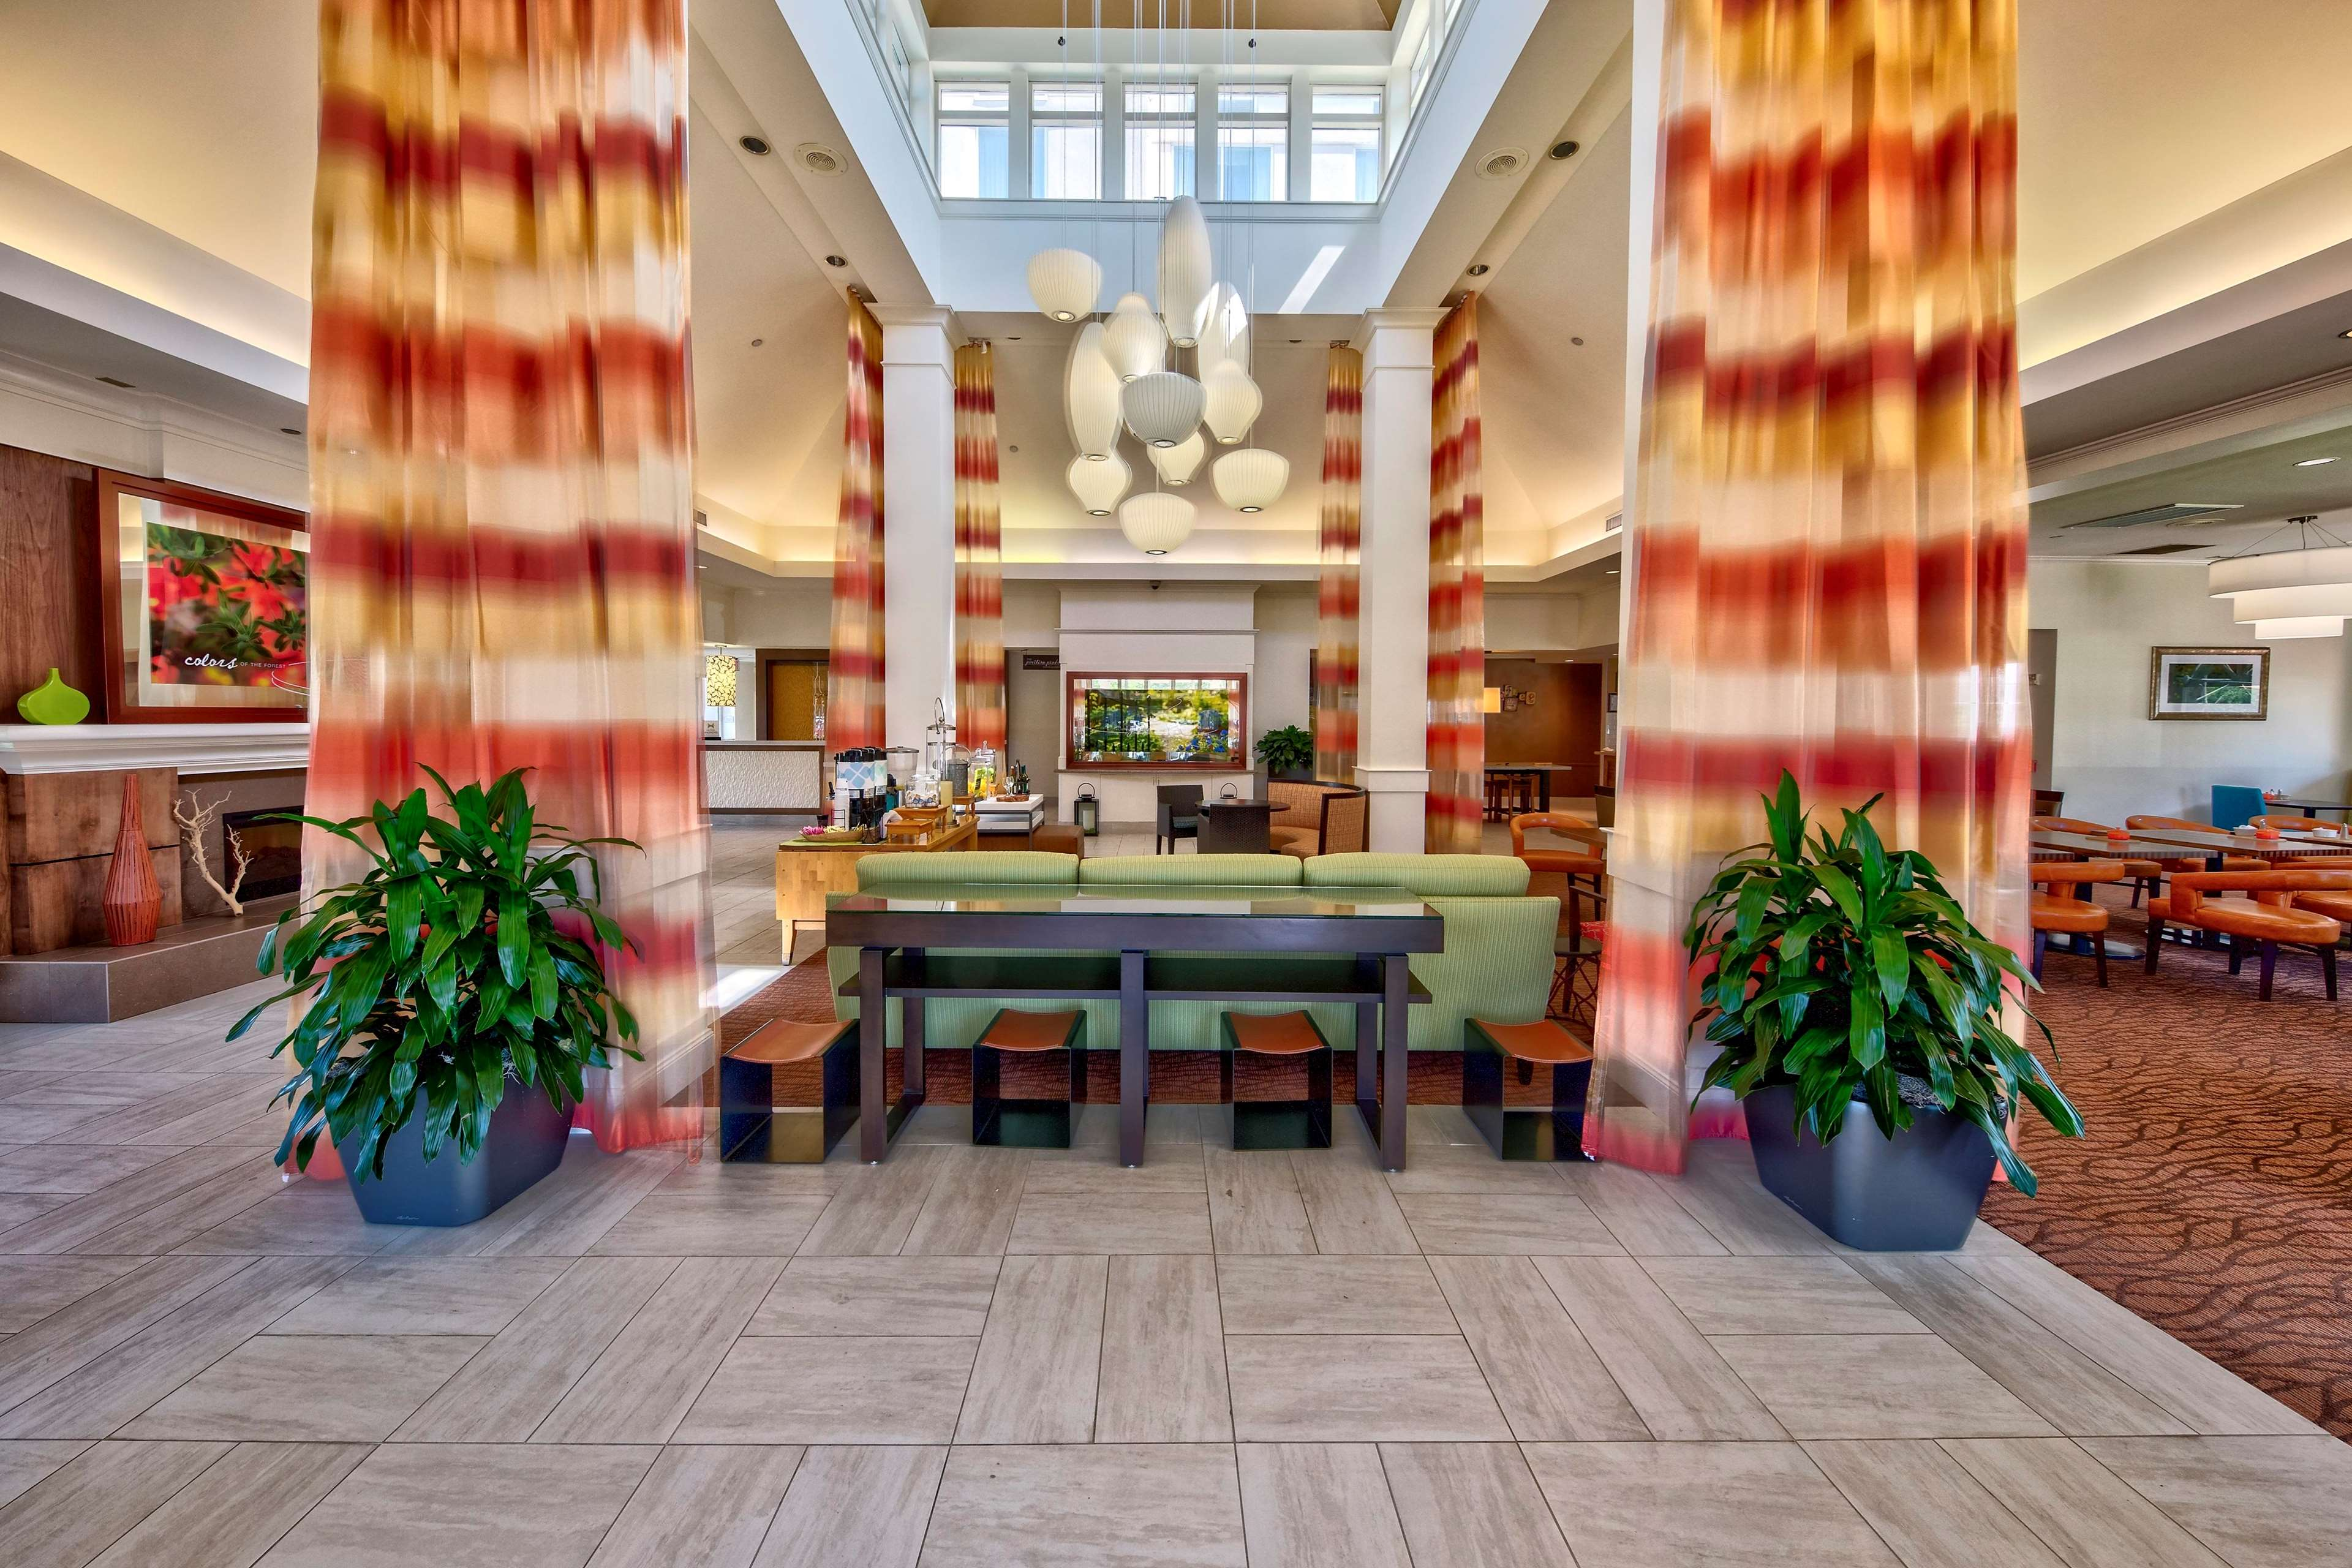 Hilton Garden Inn Houston/Bush Intercontinental Airport image 1